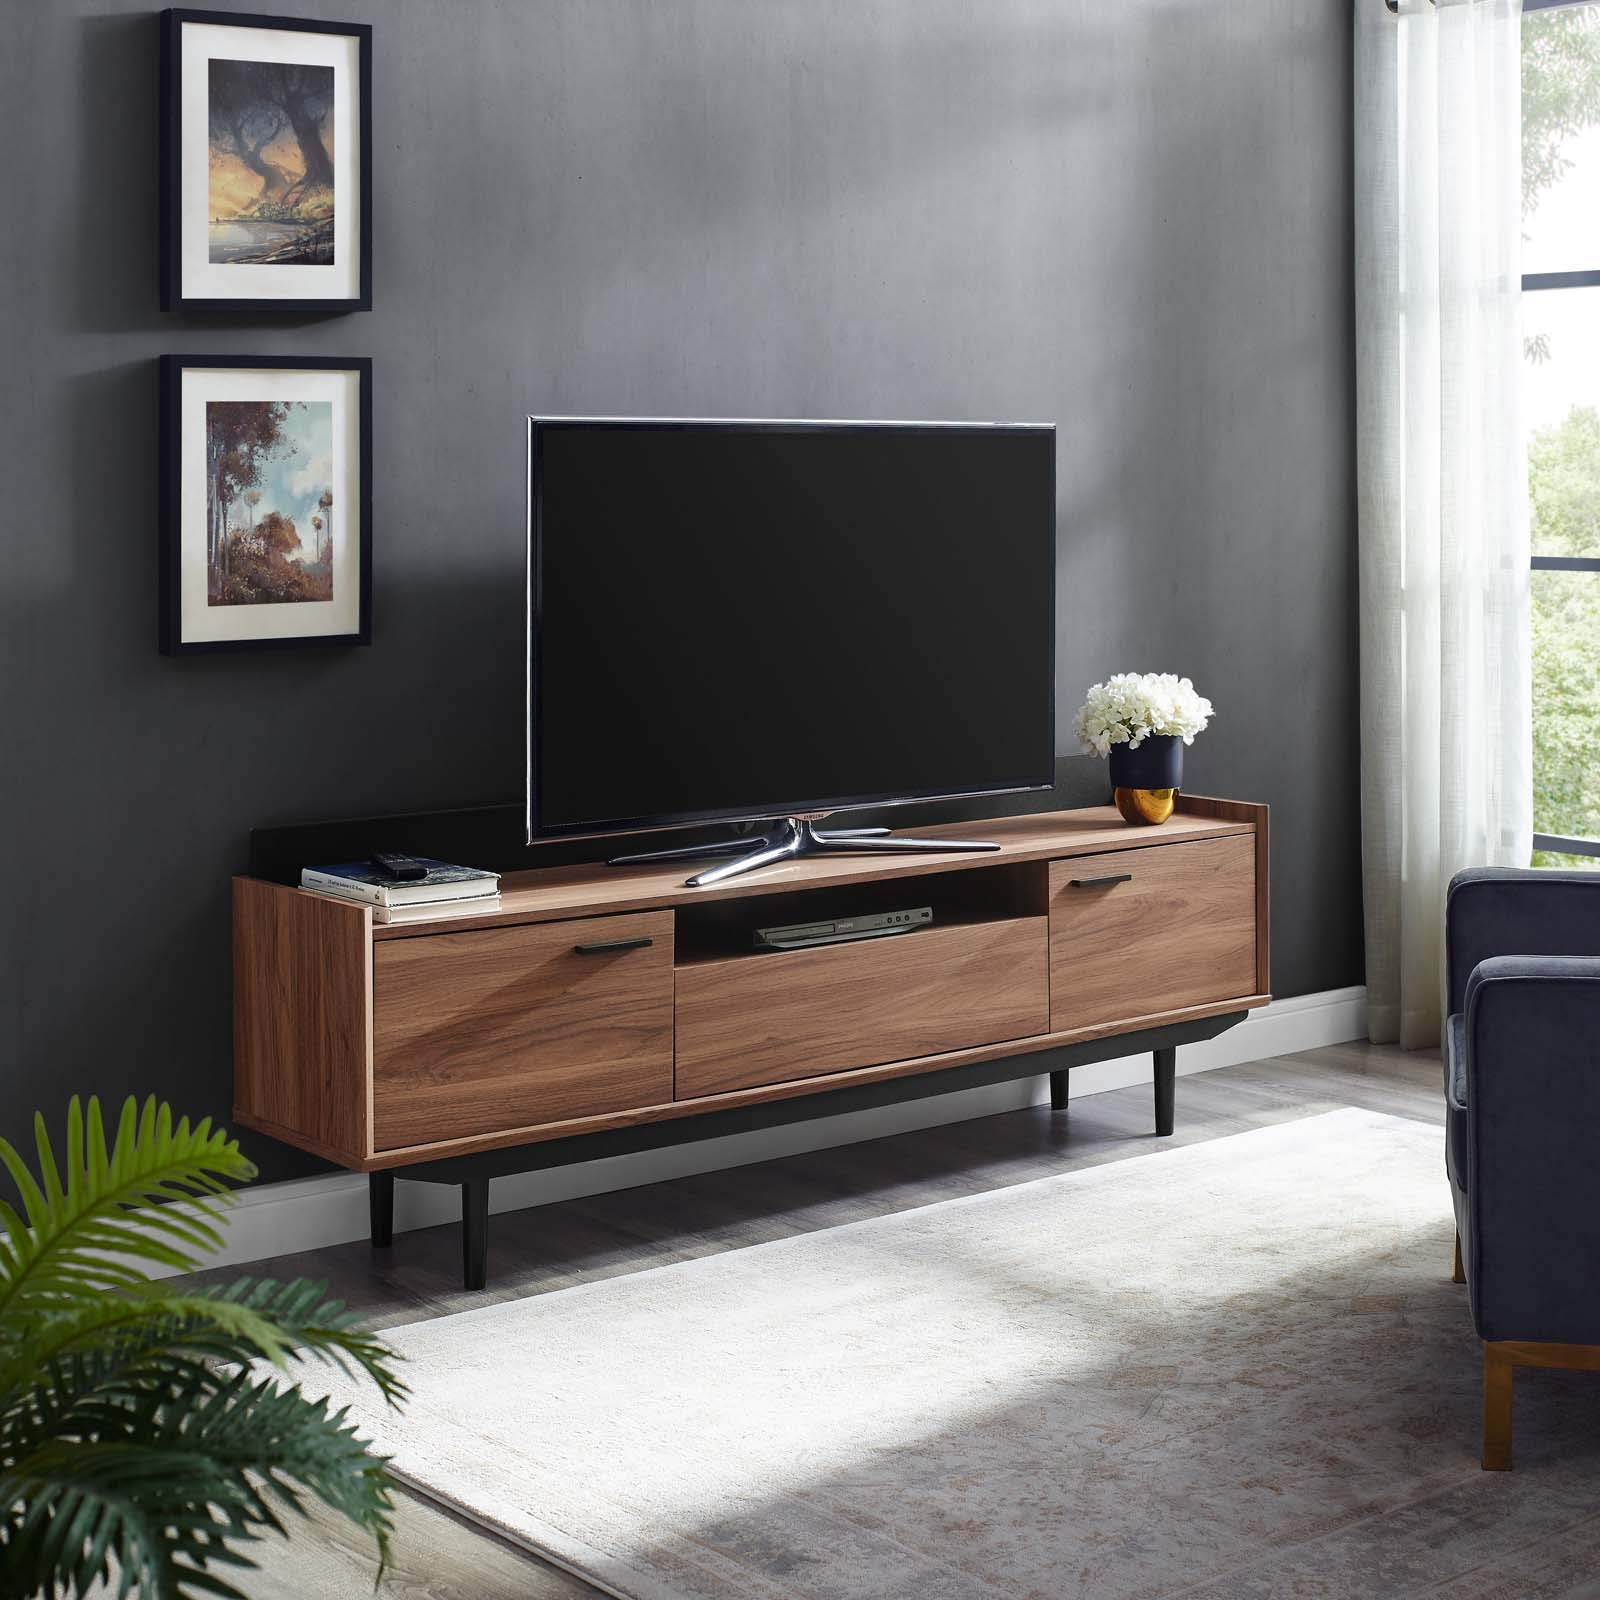 Modway Visionary 70'' Mid-Century Modern Low Profile Entertainment TV Stand in Walnut Black by Modway